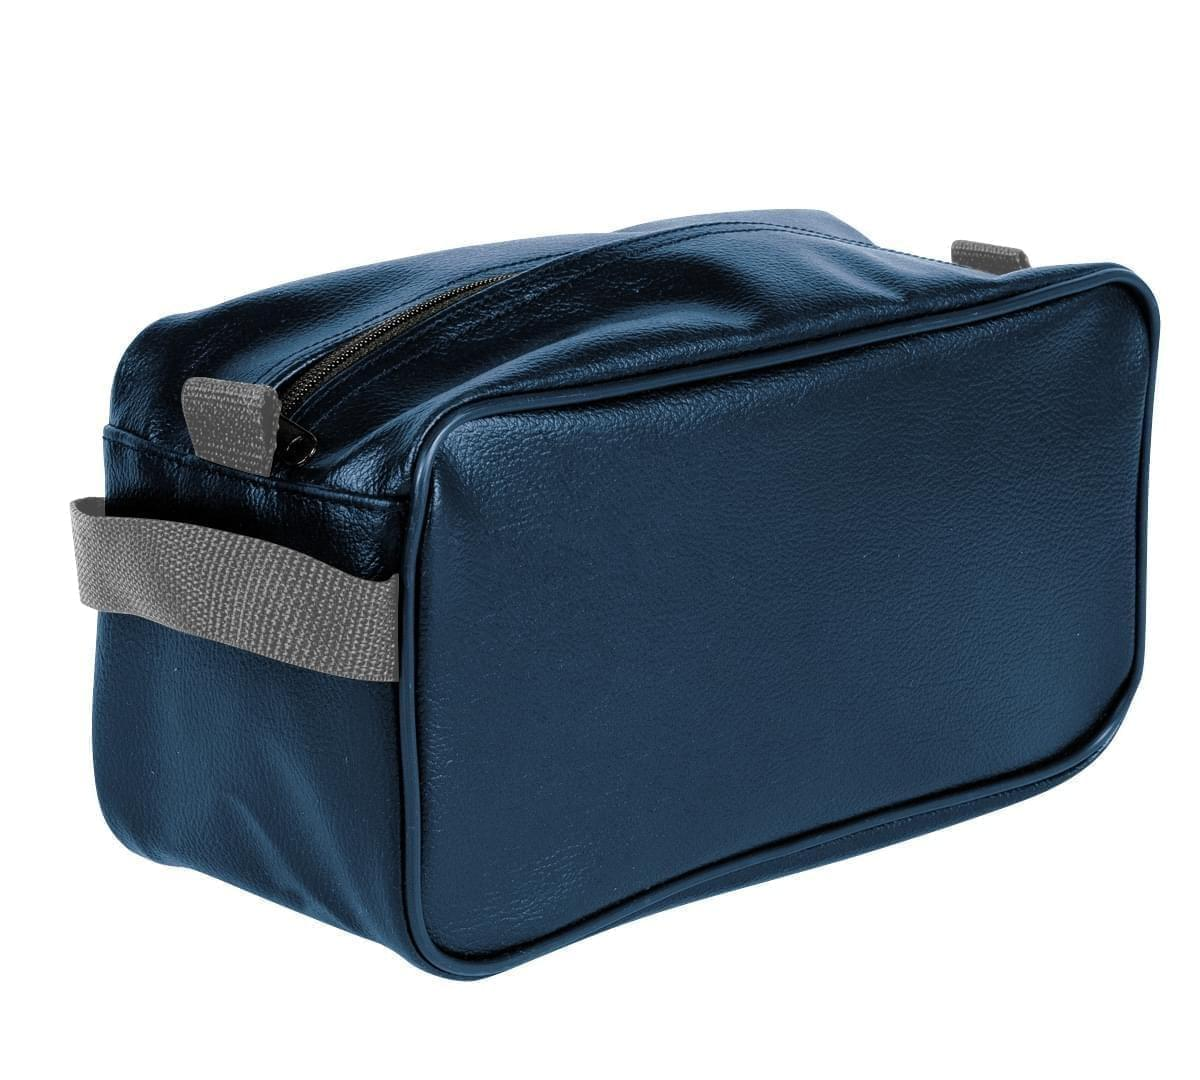 USA Made Cosmetic & Toiletry Cases, Navy-Graphite, 3000996-AWT